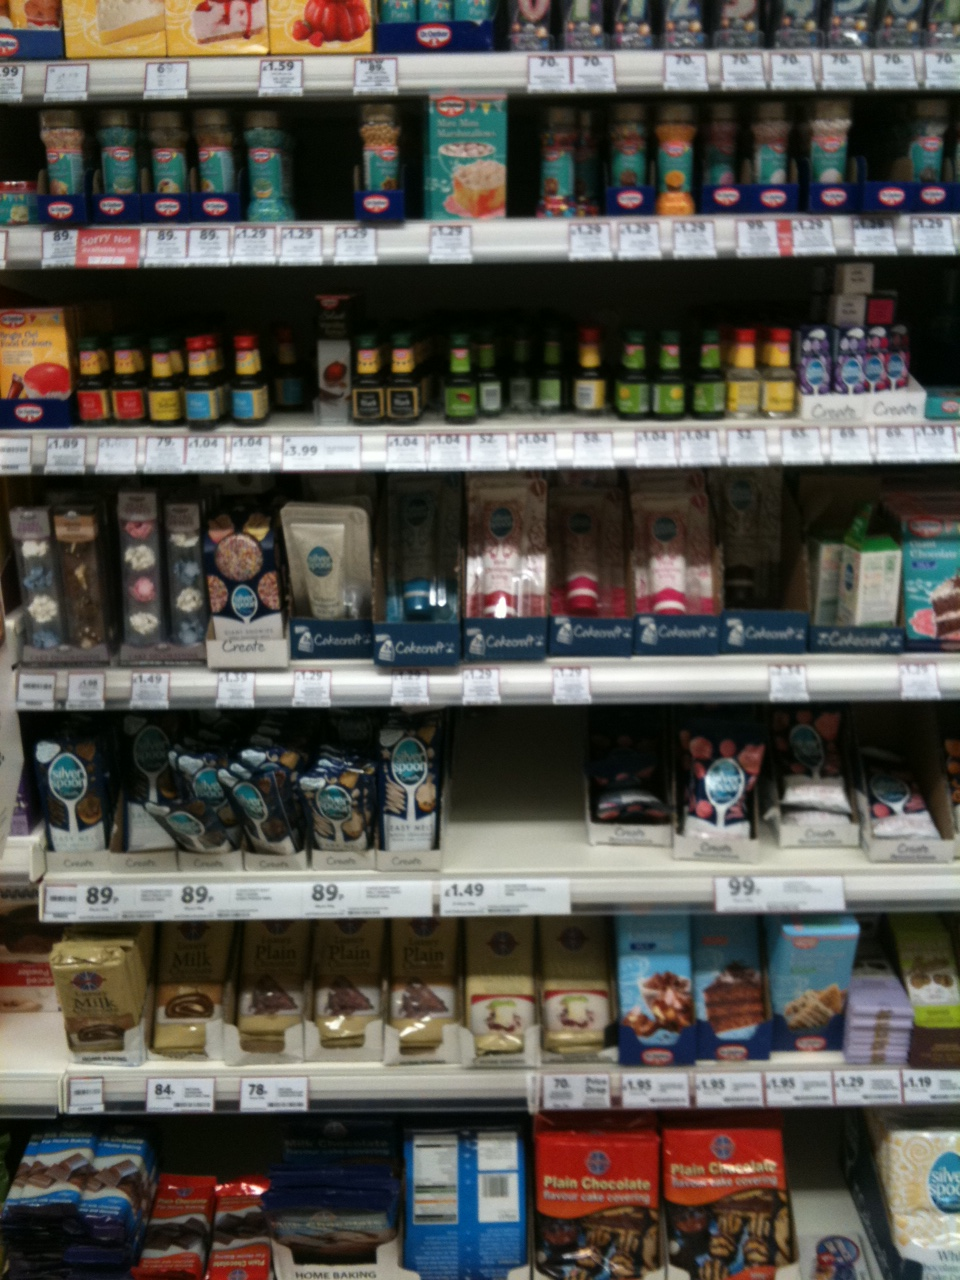 Sainsbury S Cake Decorations Sprinkles : Exciting baking supplies shopping trip! Kerry Cooks